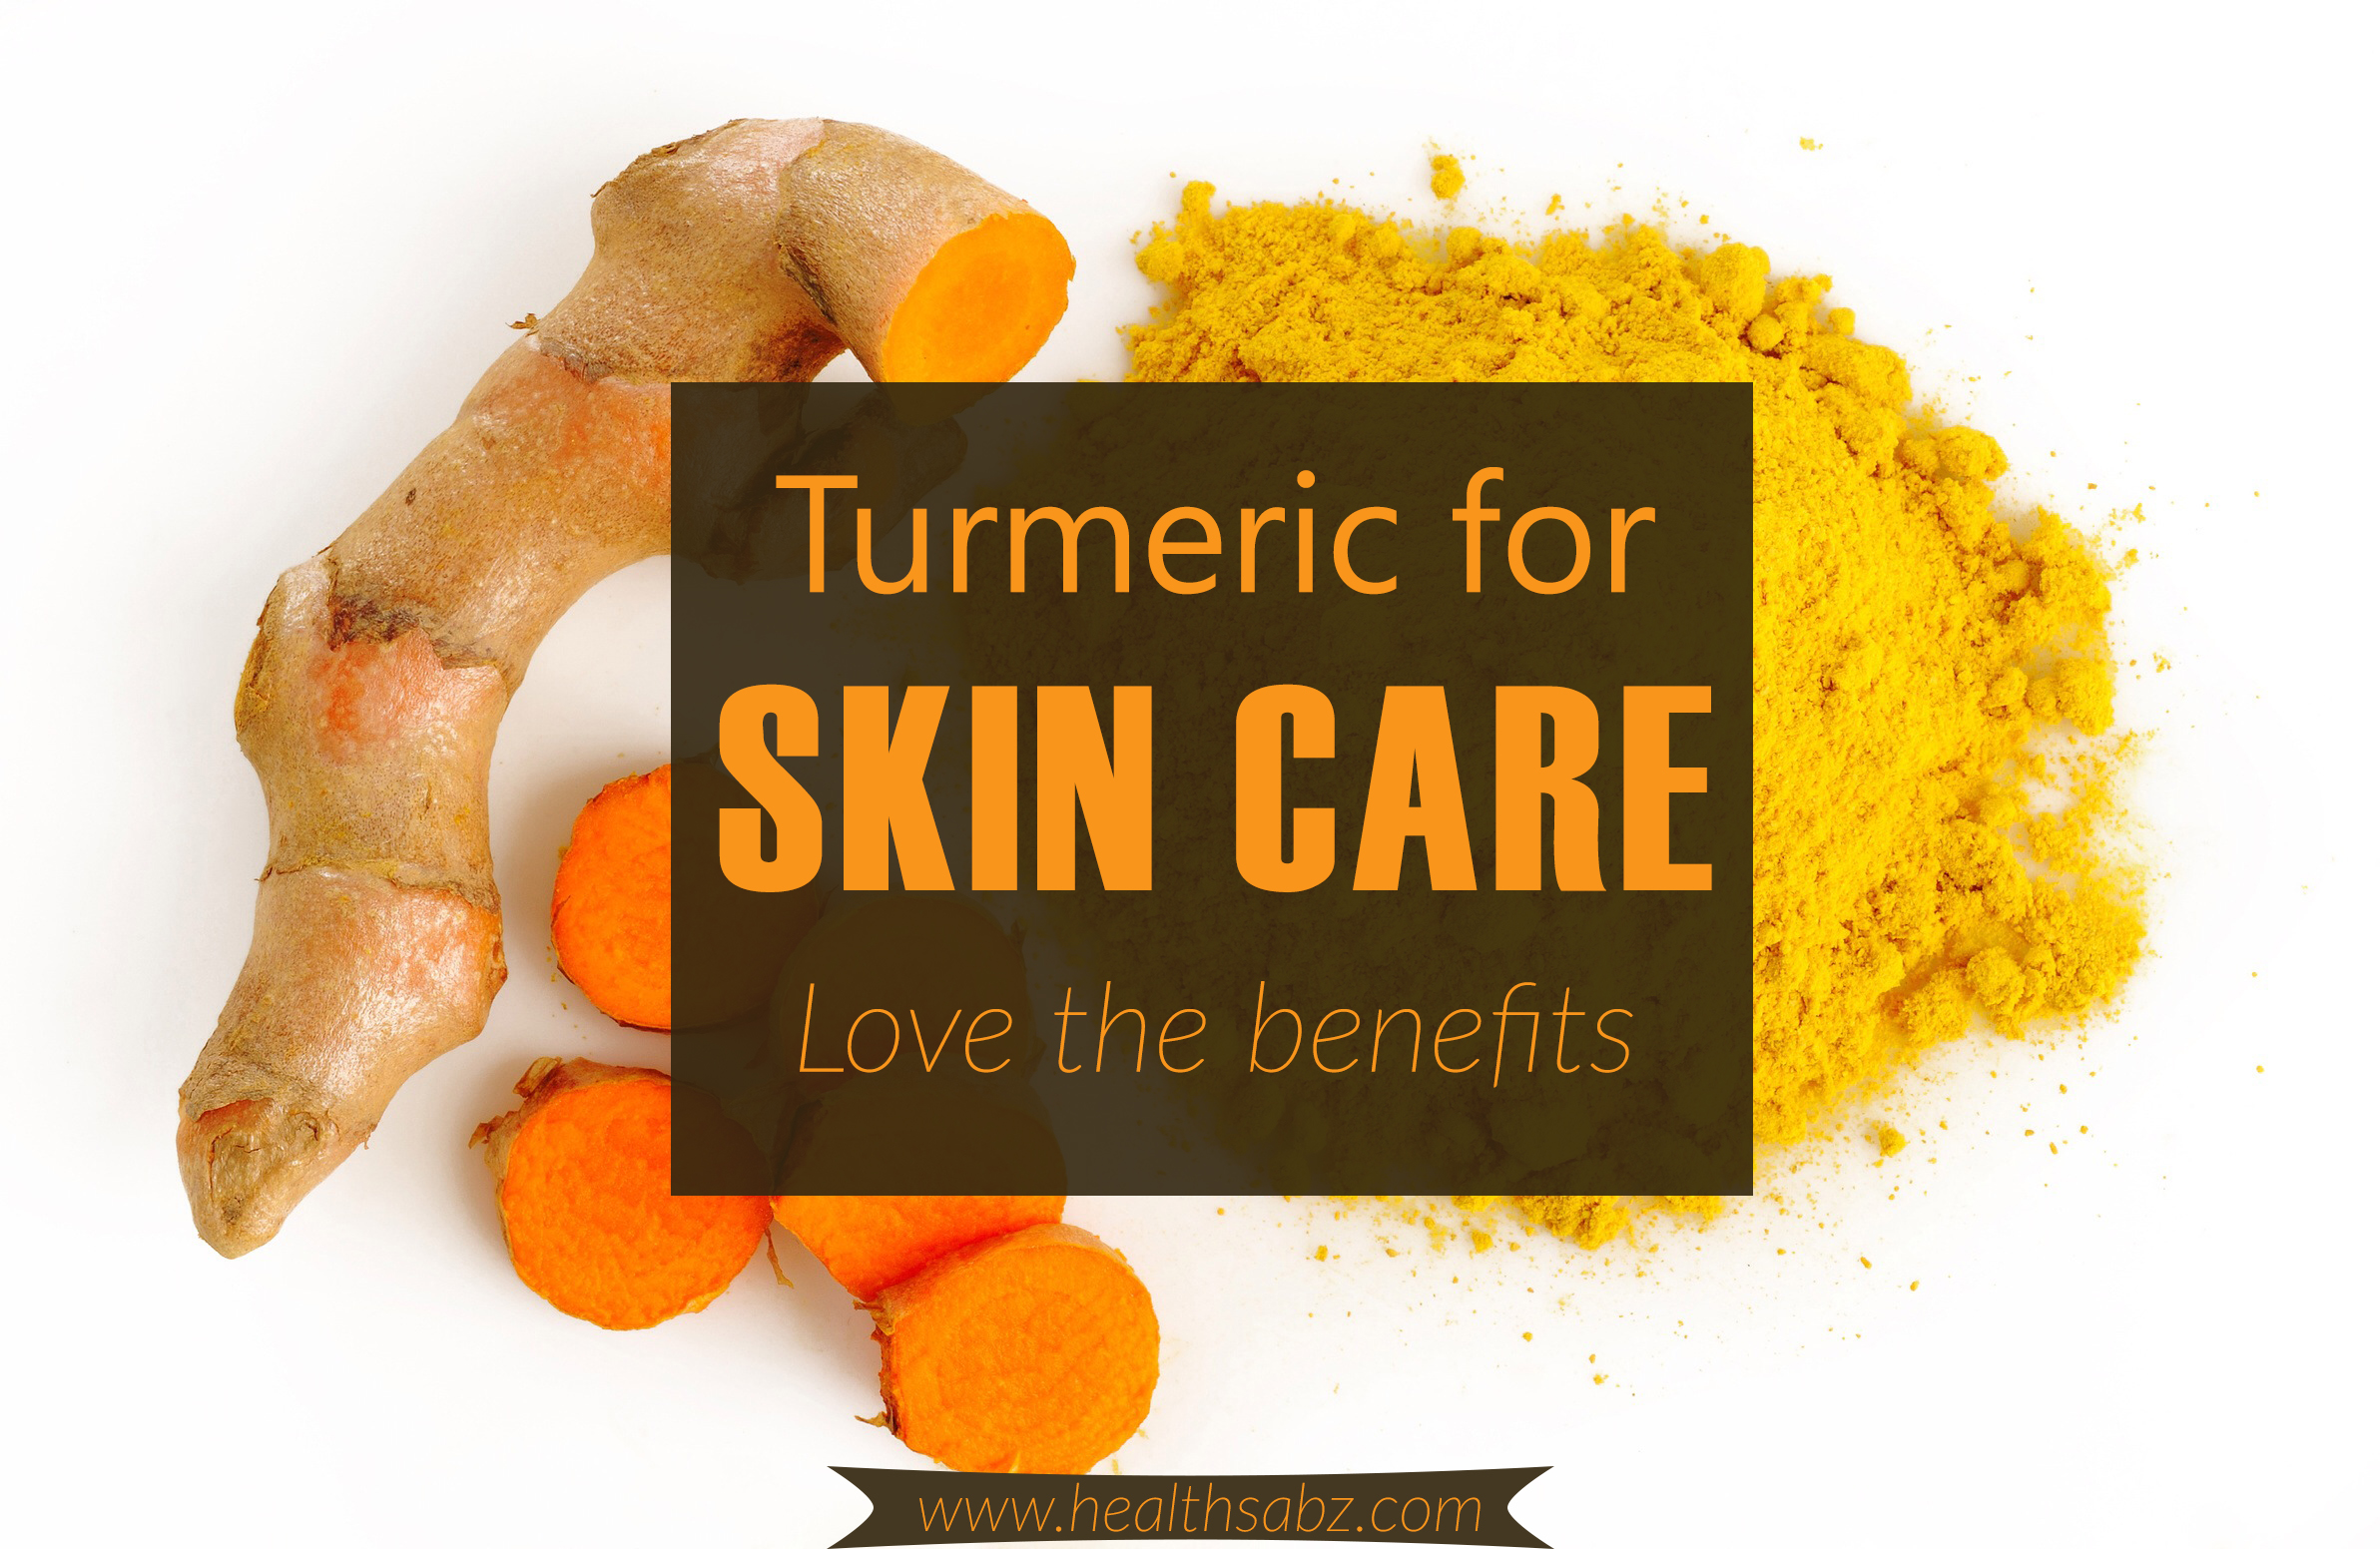 skin care & turmeric